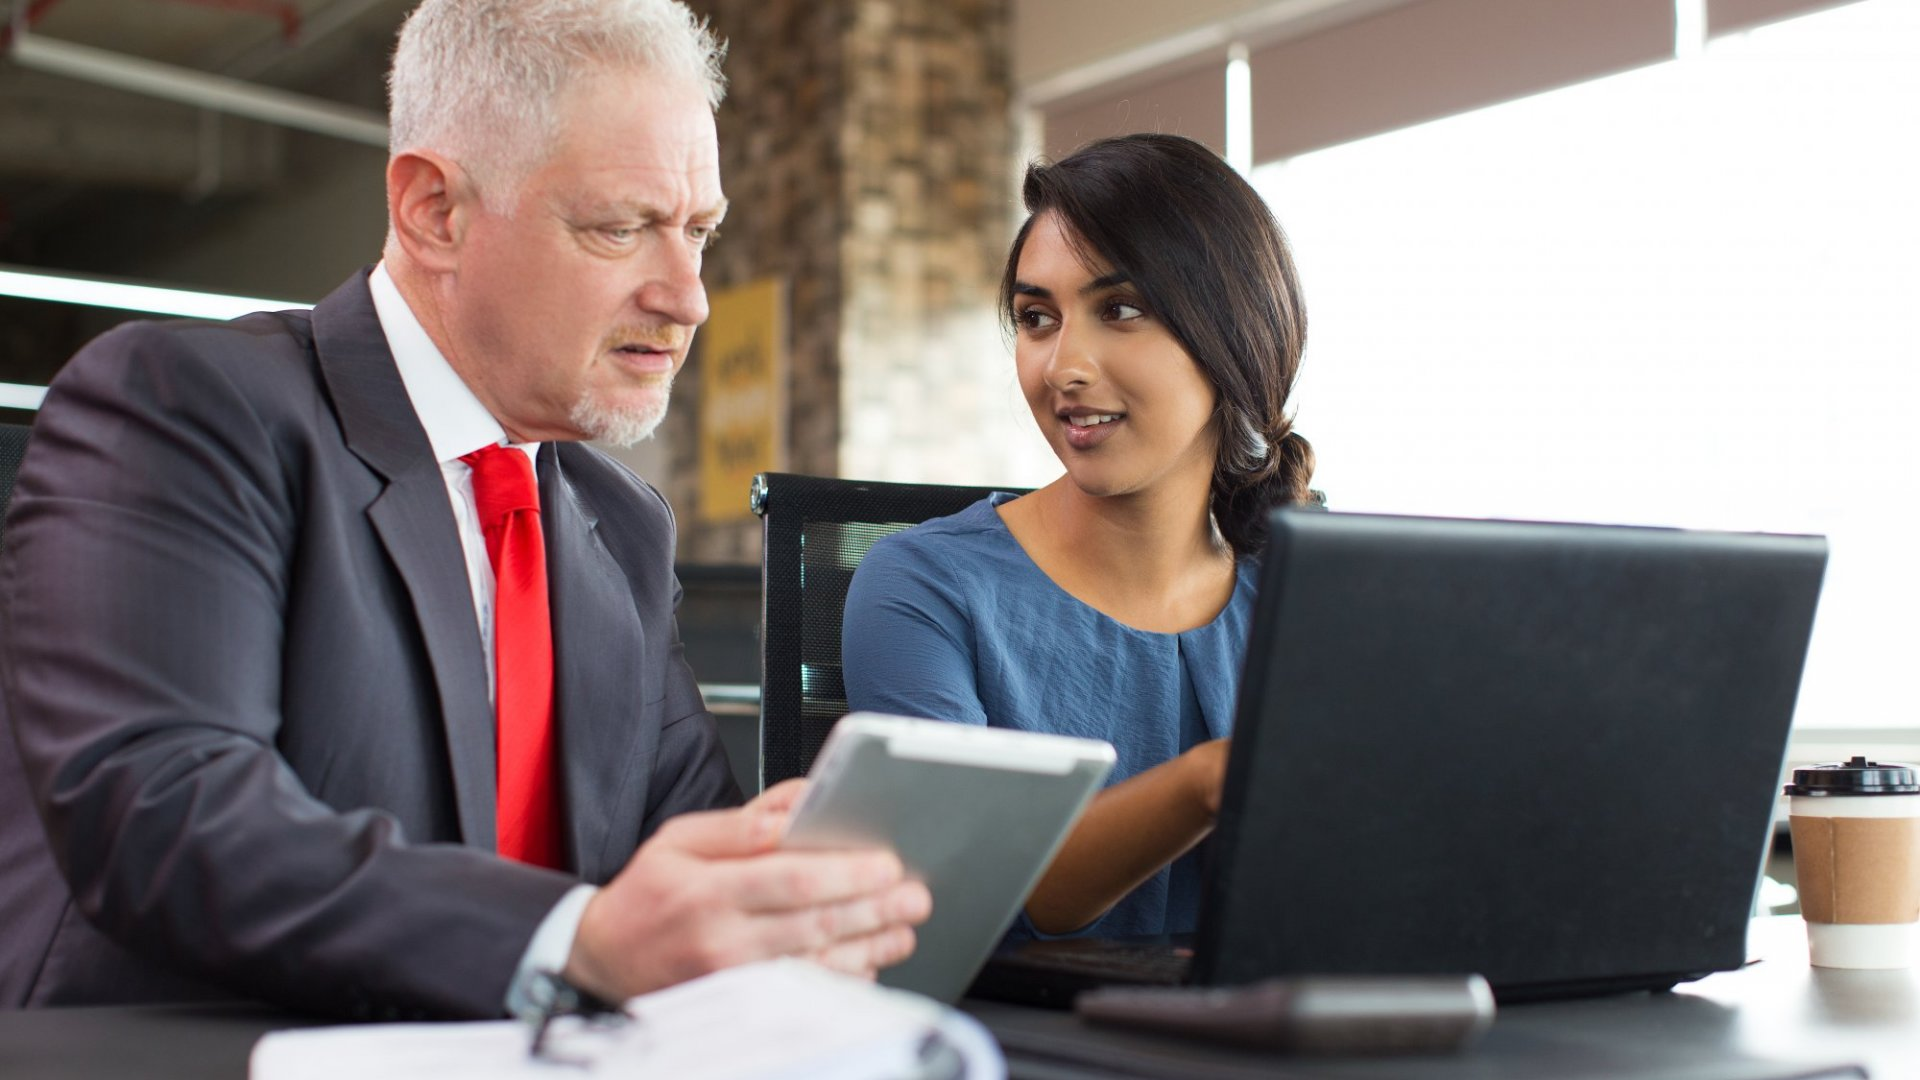 Work for a Younger Boss? Here are 5 Tips to Make it Work